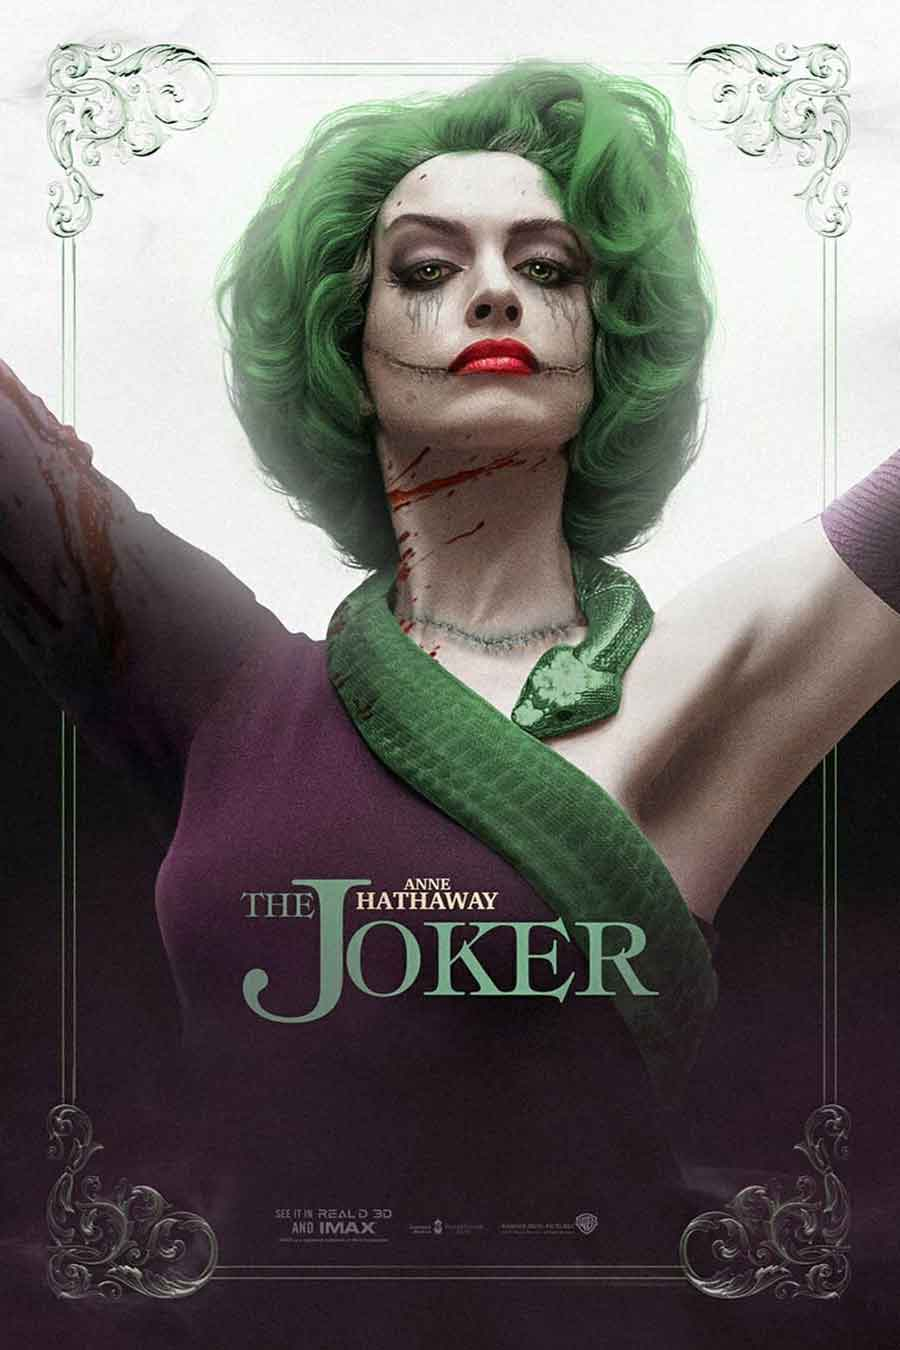 This is what Anne Hathaway would look like as the JOKER